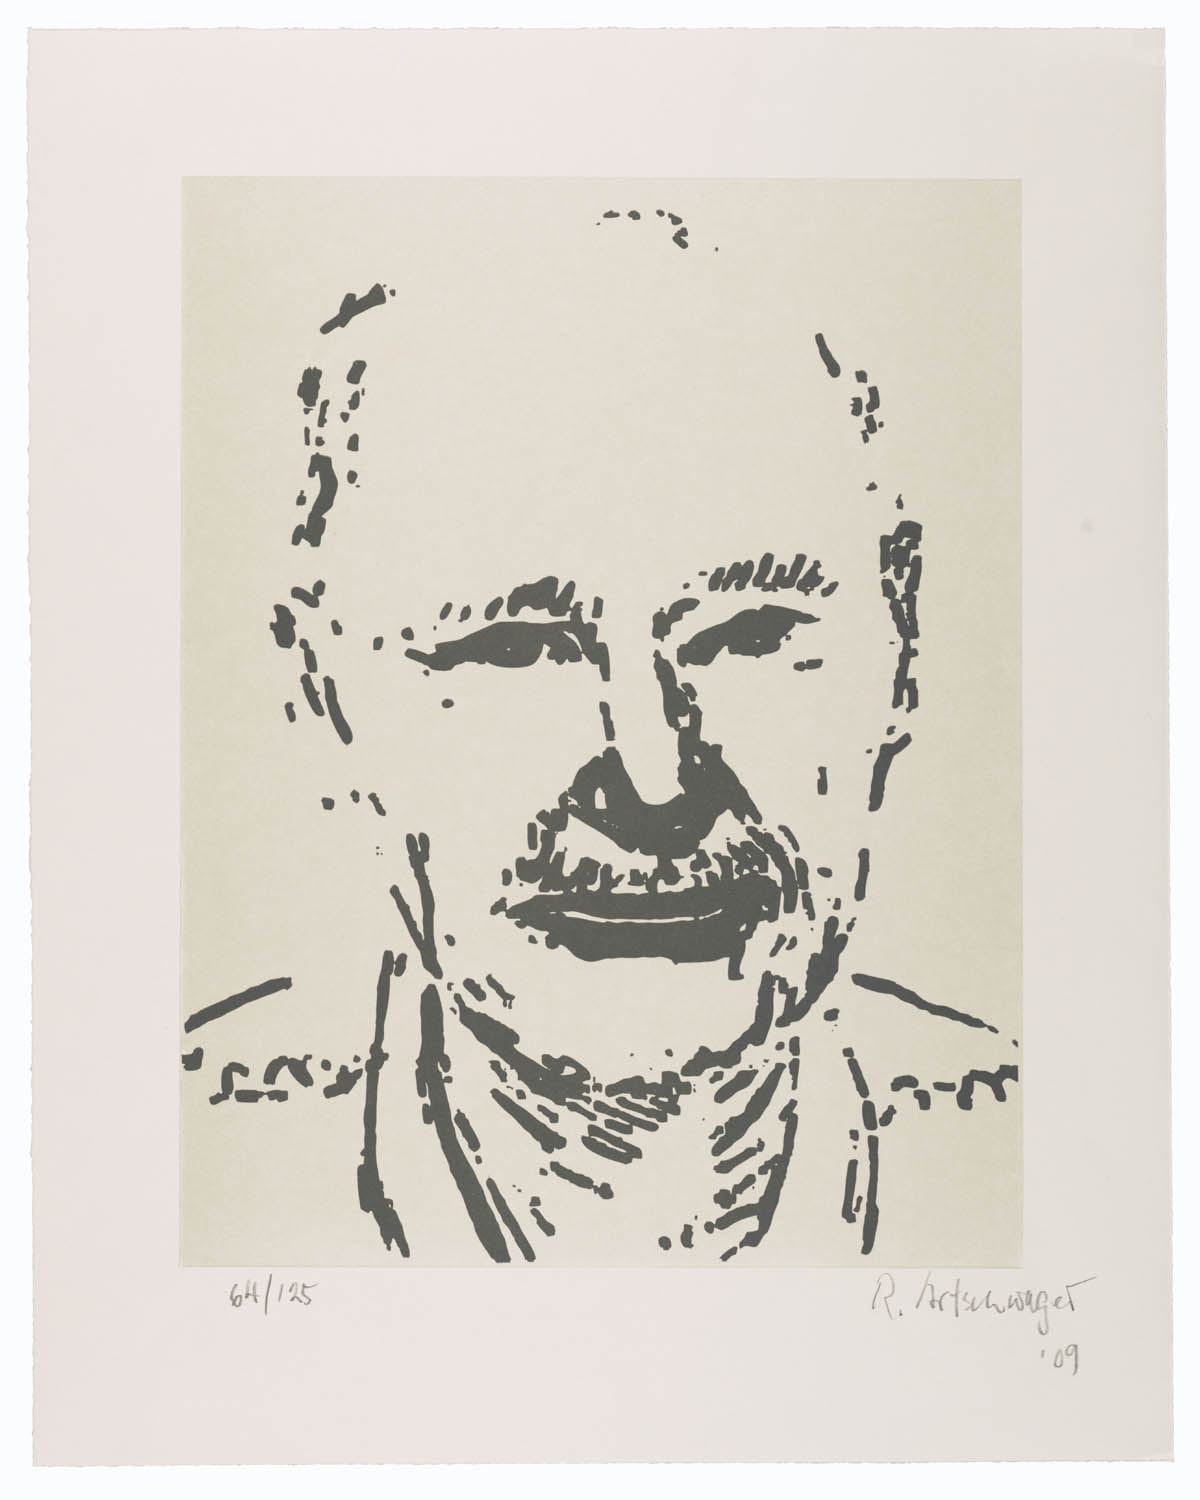 Sellf Portrait, 2009 by Richard Artschwager